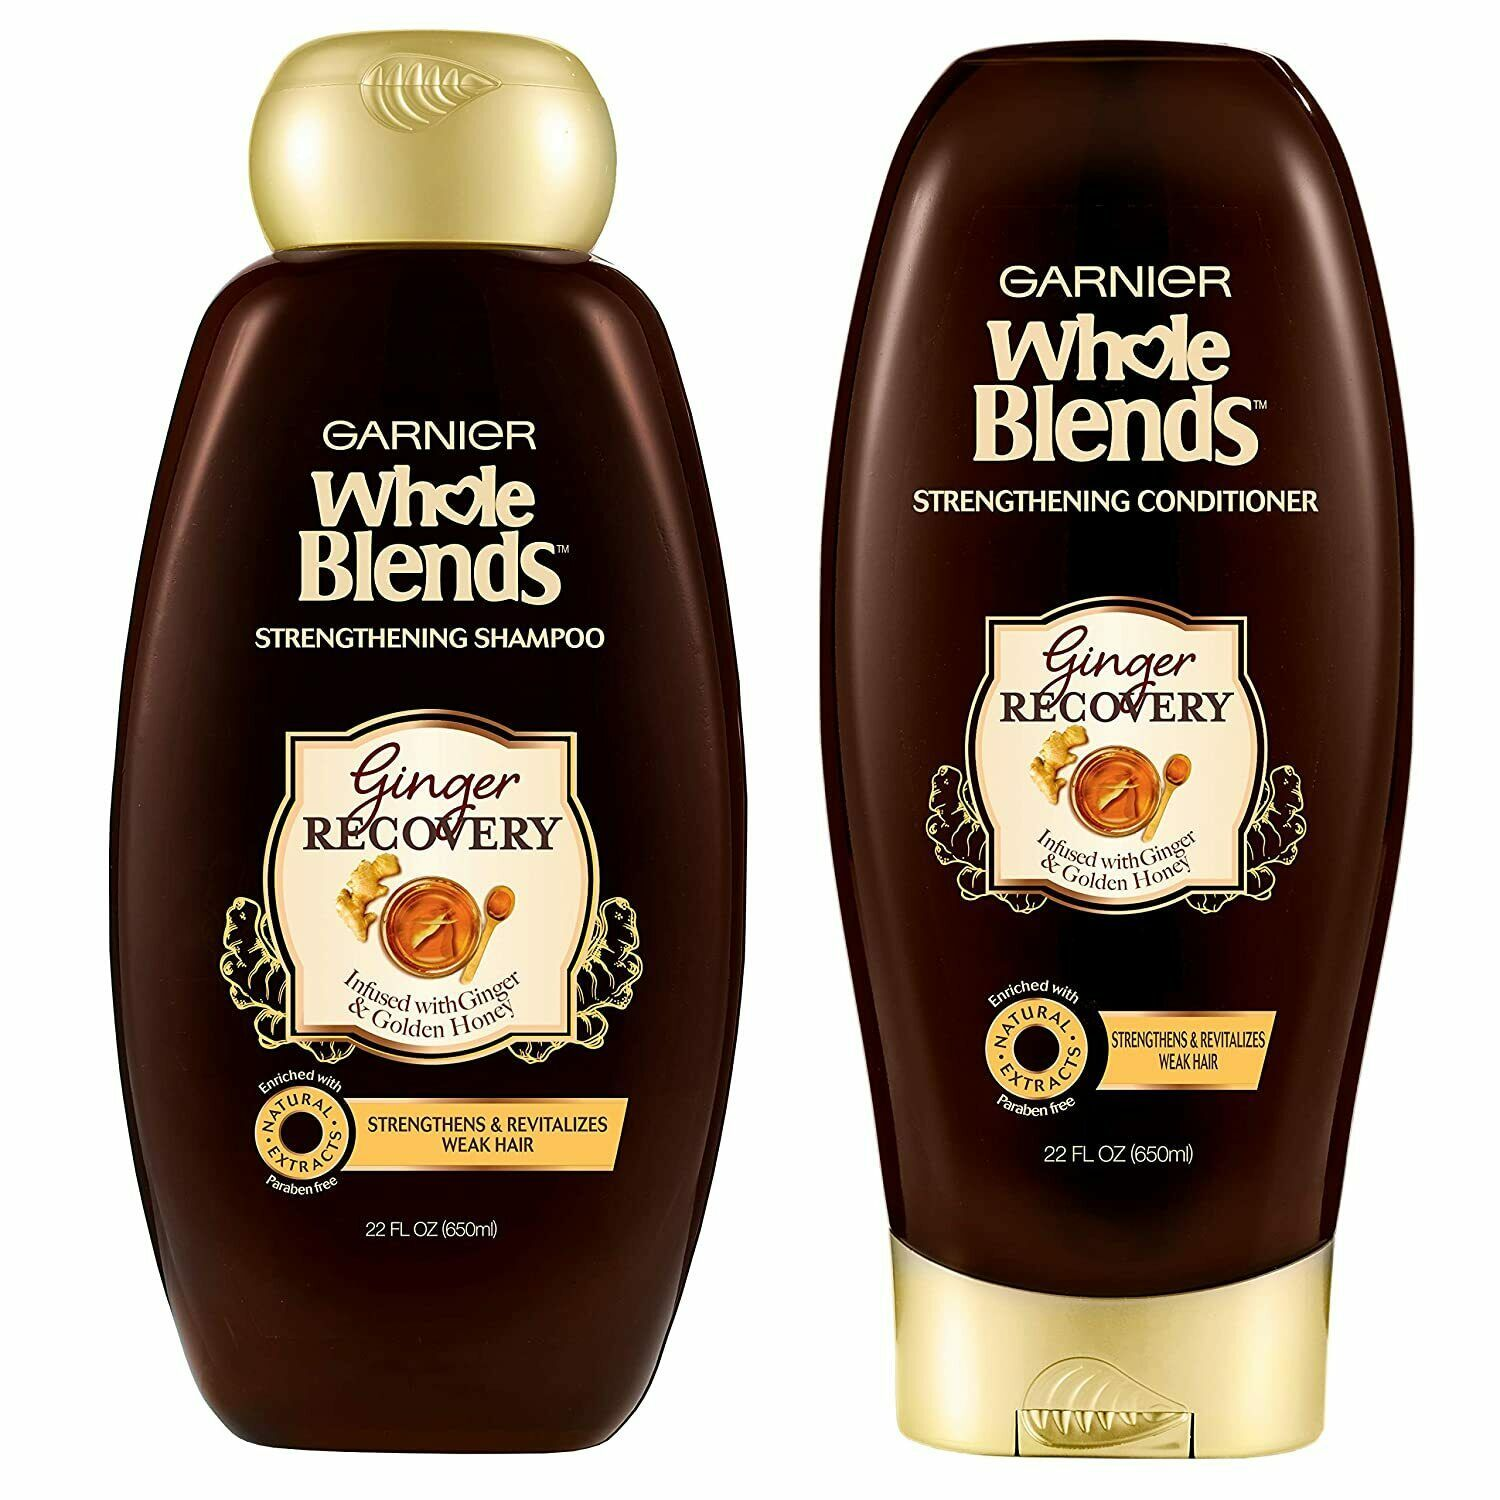 2 PACK GARNIER GINGER RECOVERY STRENGTHENING SHAMPOO AND CONDITIONER WITH GINGER - $19.80